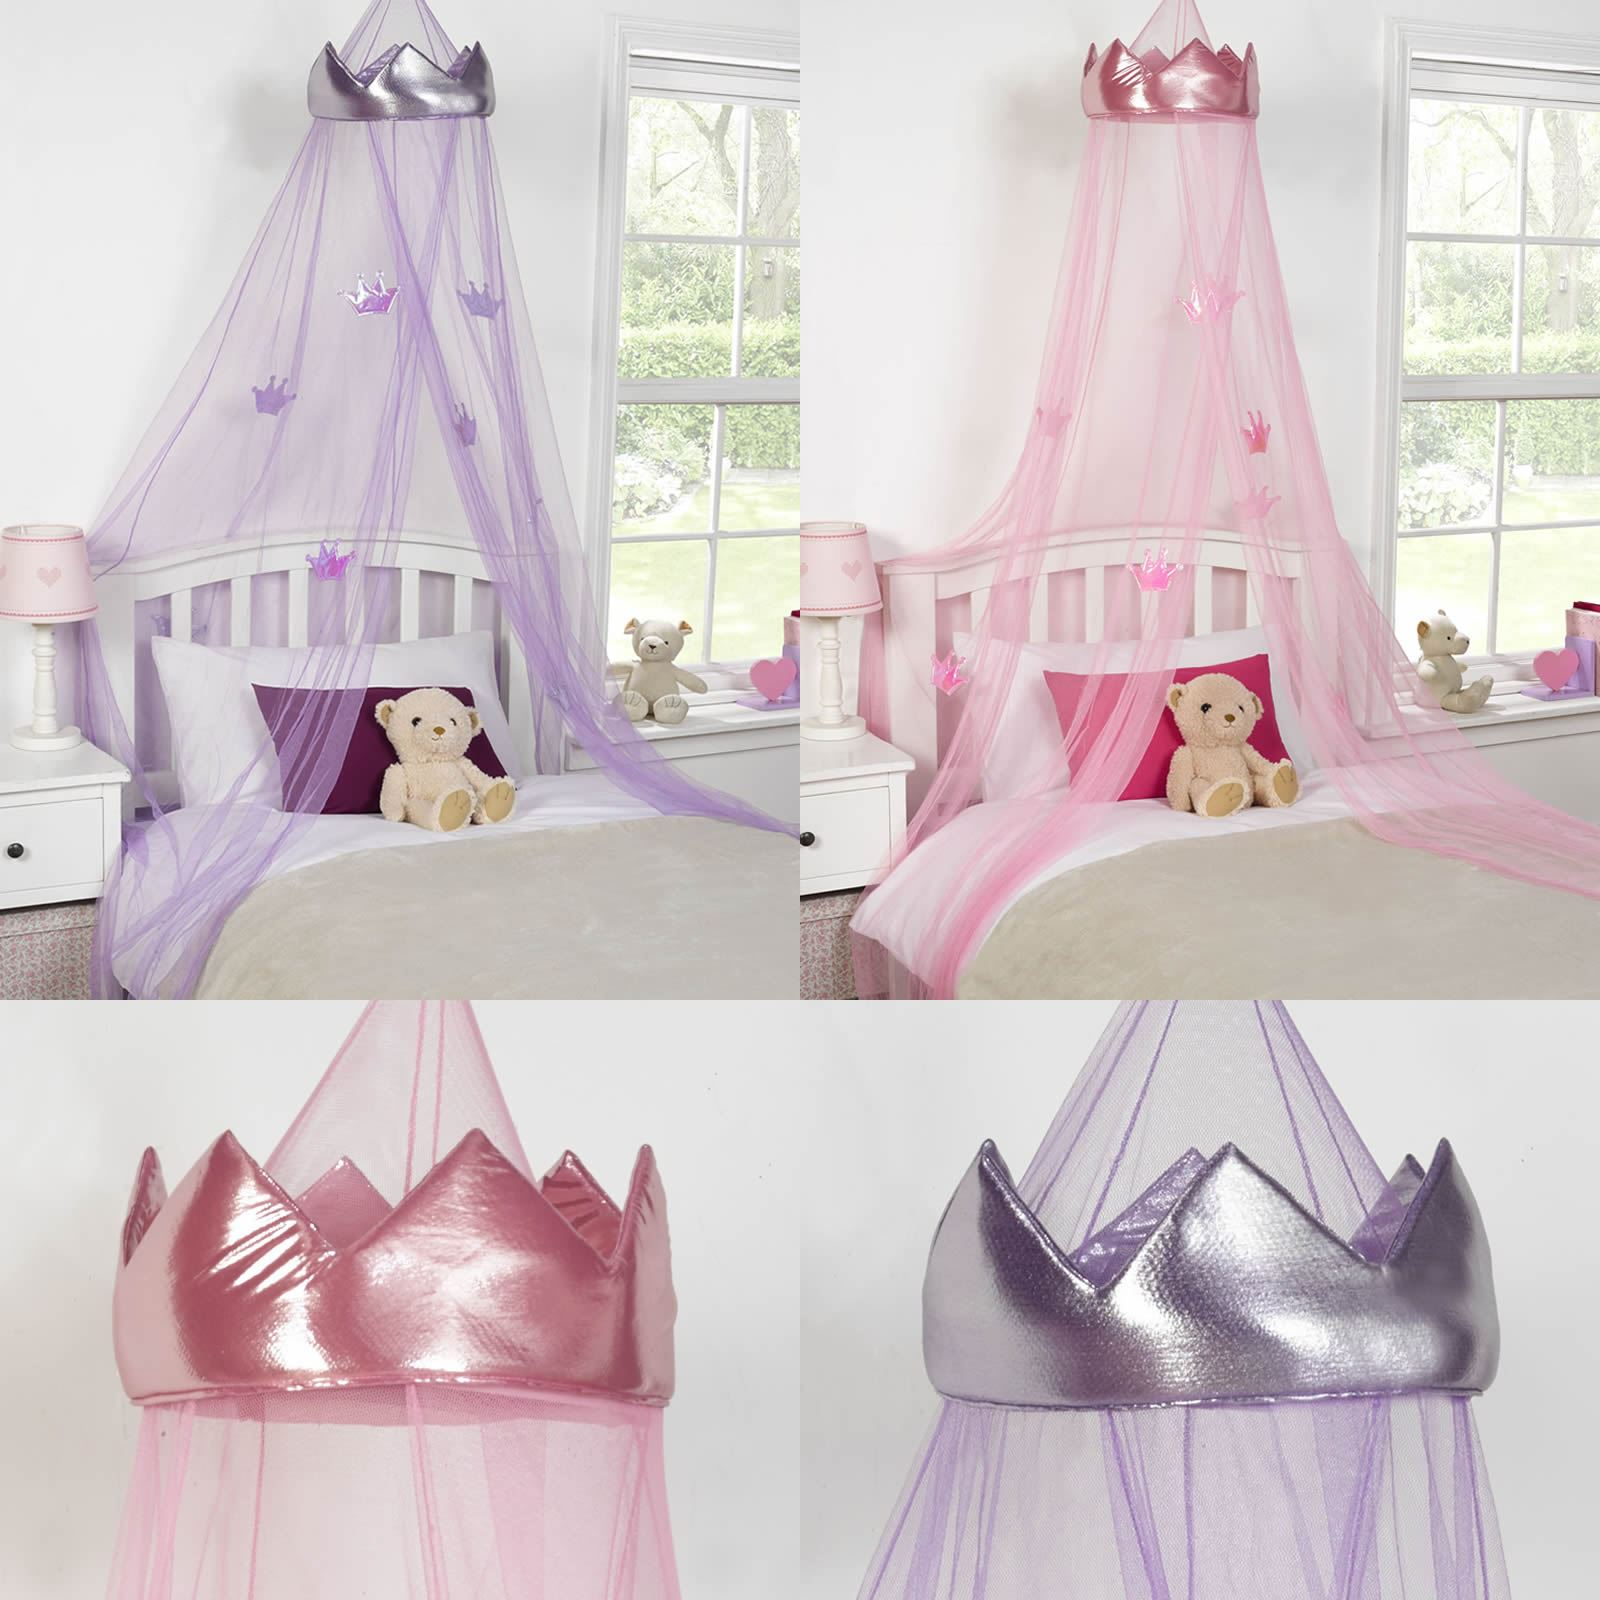 Ideal Textiles : girls canopy bed - memphite.com